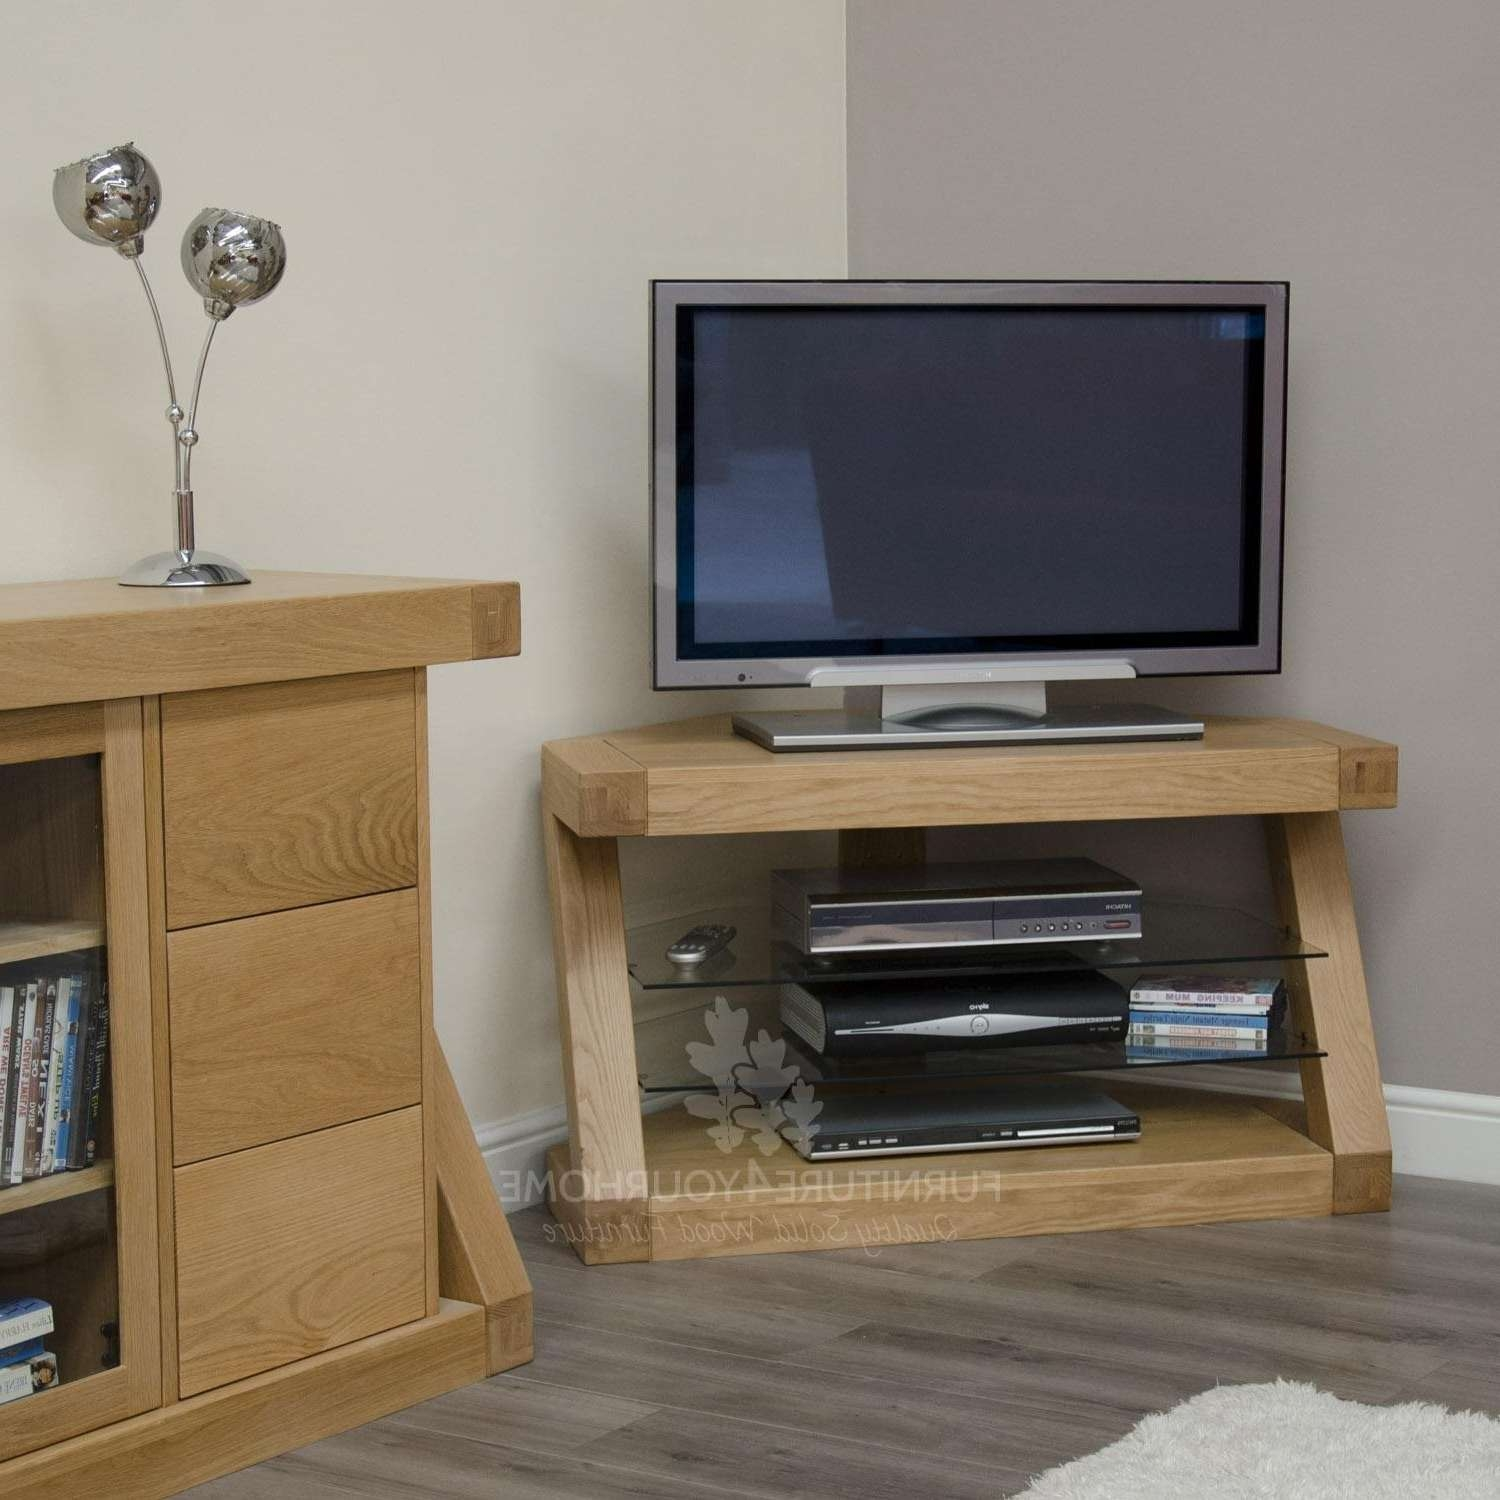 Picturesque Design Small Corner Tv Cabinet Beautiful Ideas Z Solid Throughout Dark Wood Corner Tv Stands (View 15 of 15)